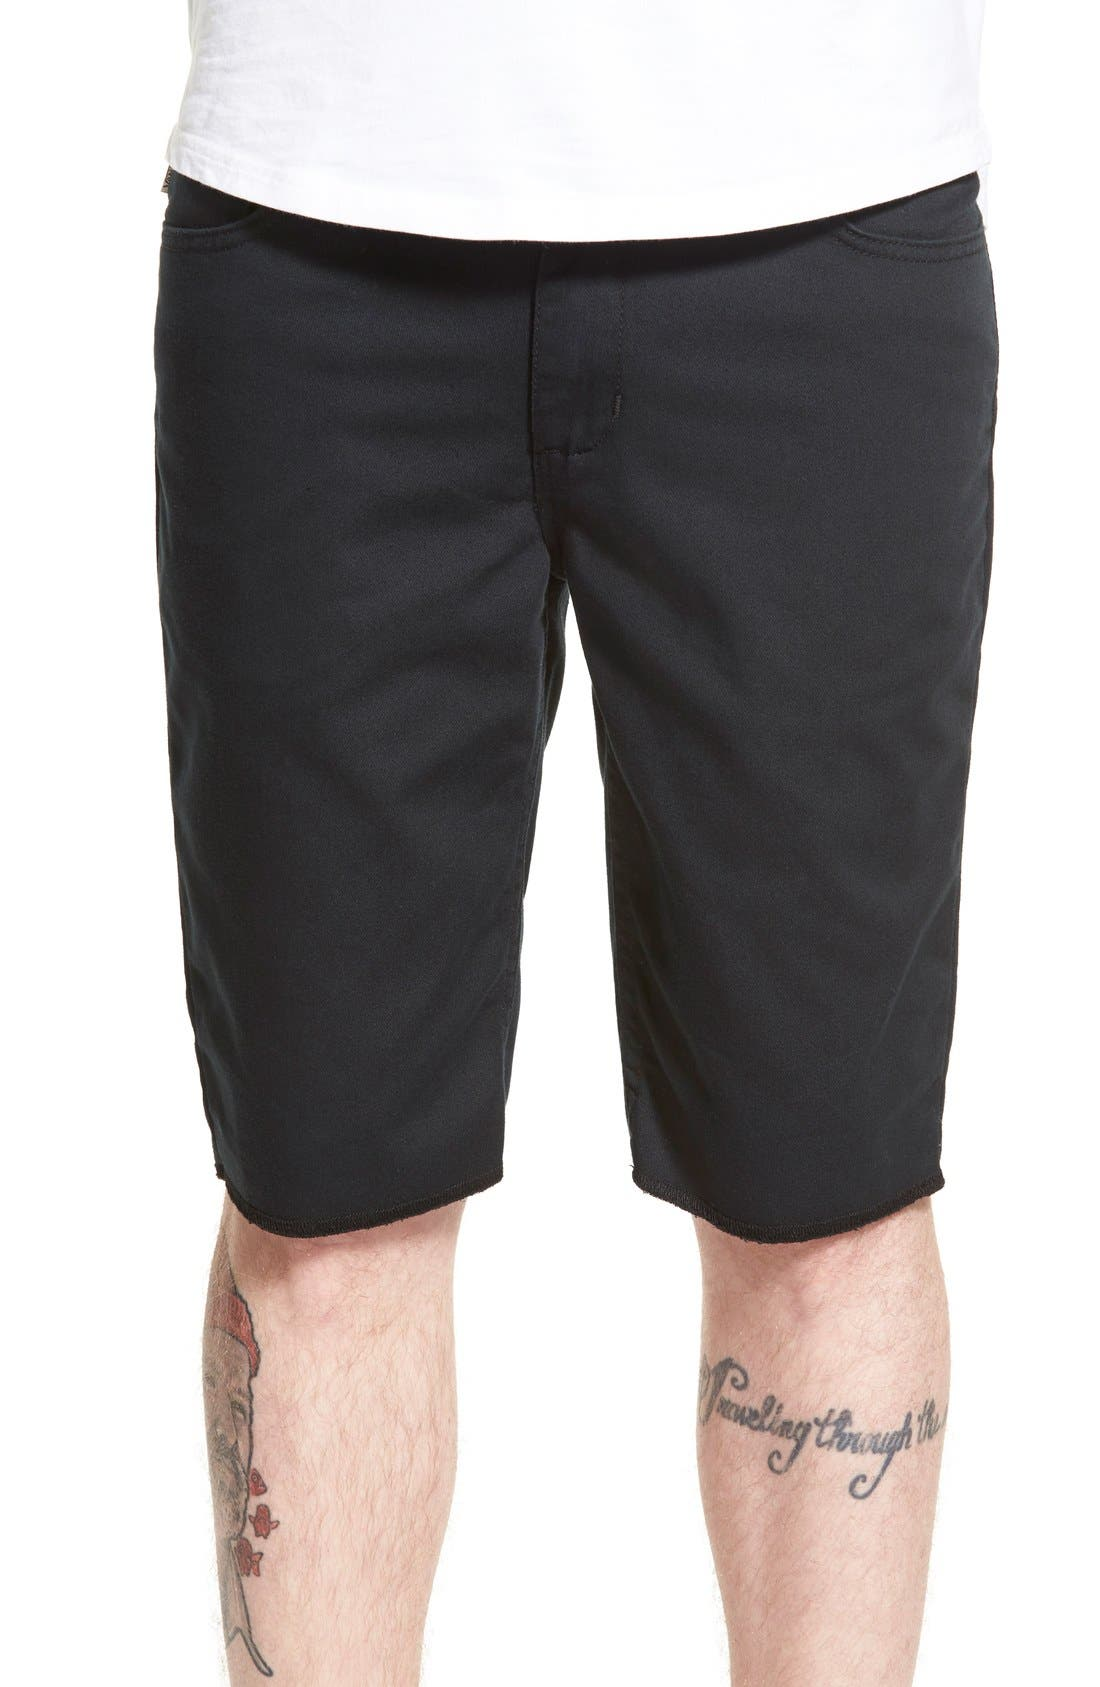 'Covina II - Anthony Van Engelen' Twill Shorts,                             Main thumbnail 1, color,                             001